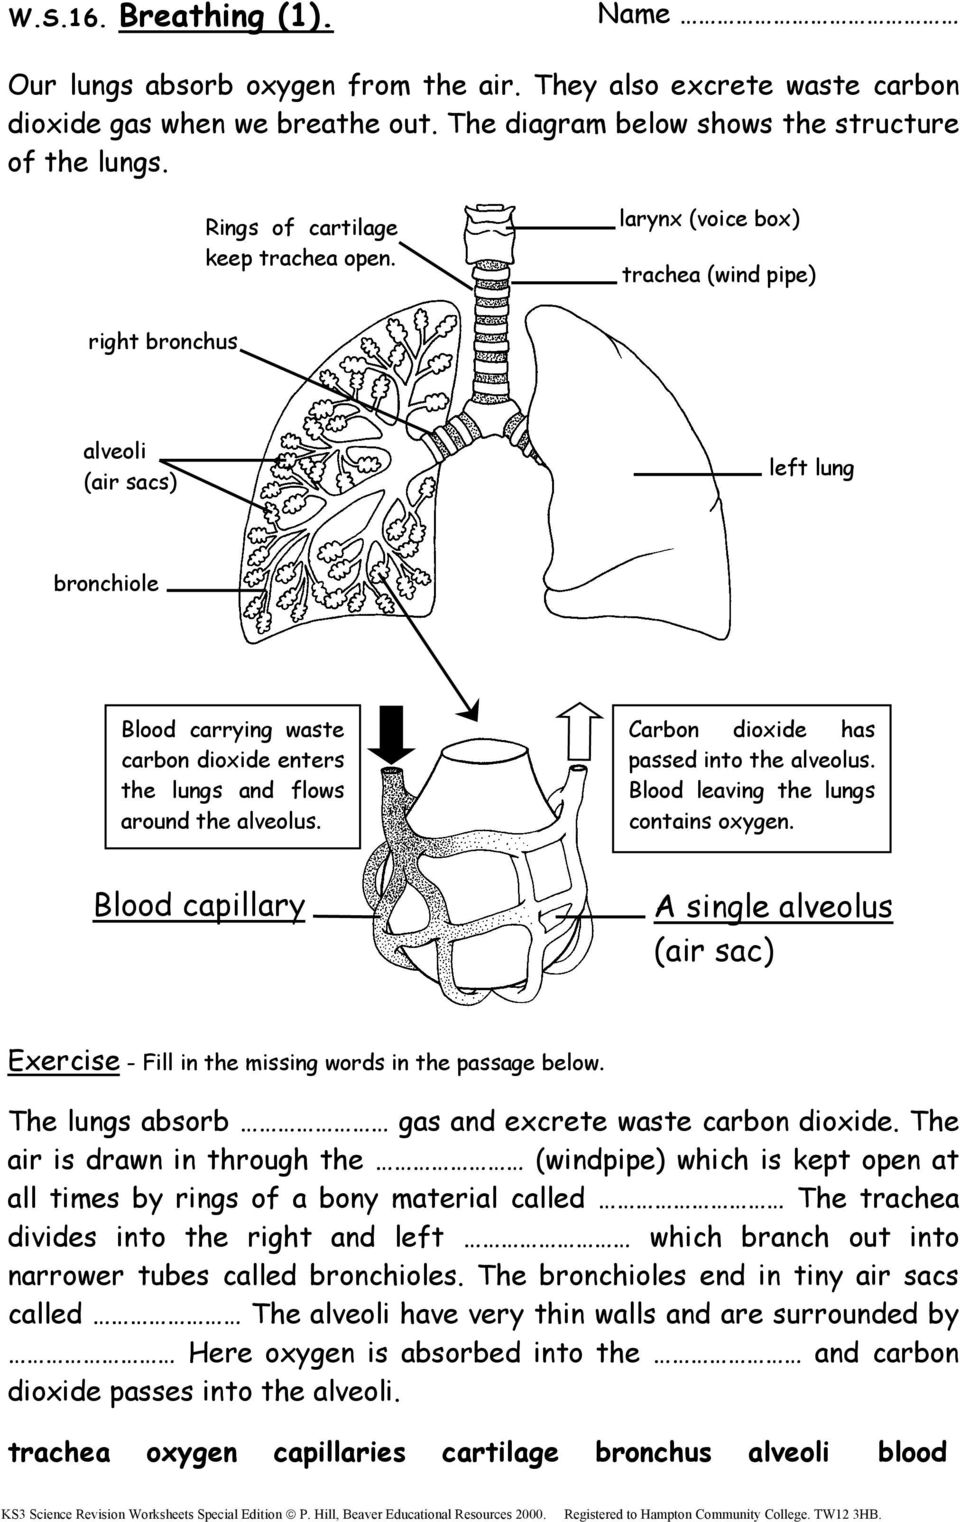 Ks3 science revision worksheets pdf larynx voice box trachea wind pipe right bronchus alveoli air sacs ccuart Images